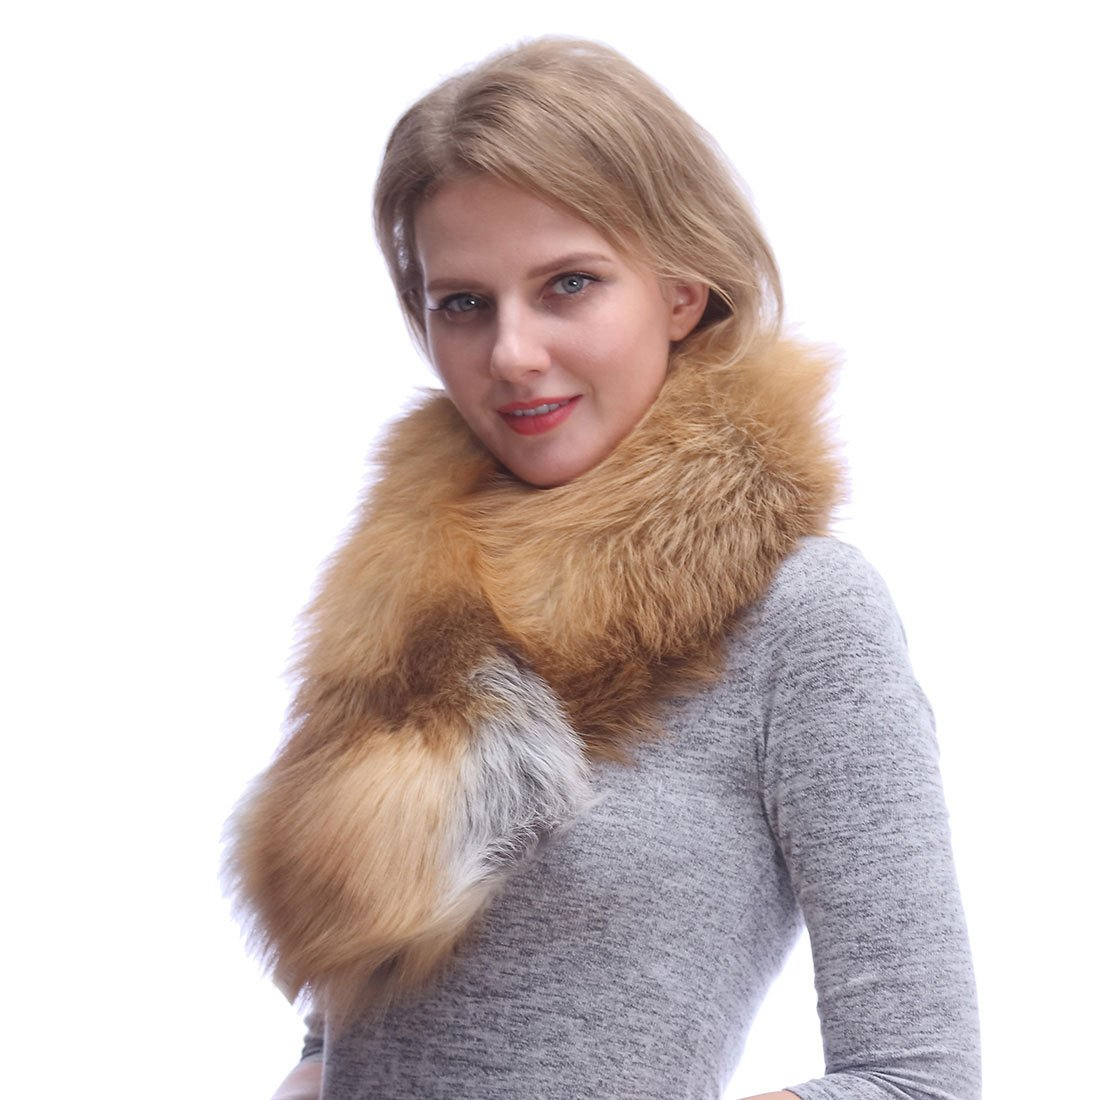 Real Fox Fur Scarf for Women-Sleeveless Fur Shawl,Neck Warm Fur Collar for Evening Party Wedding Gift-001